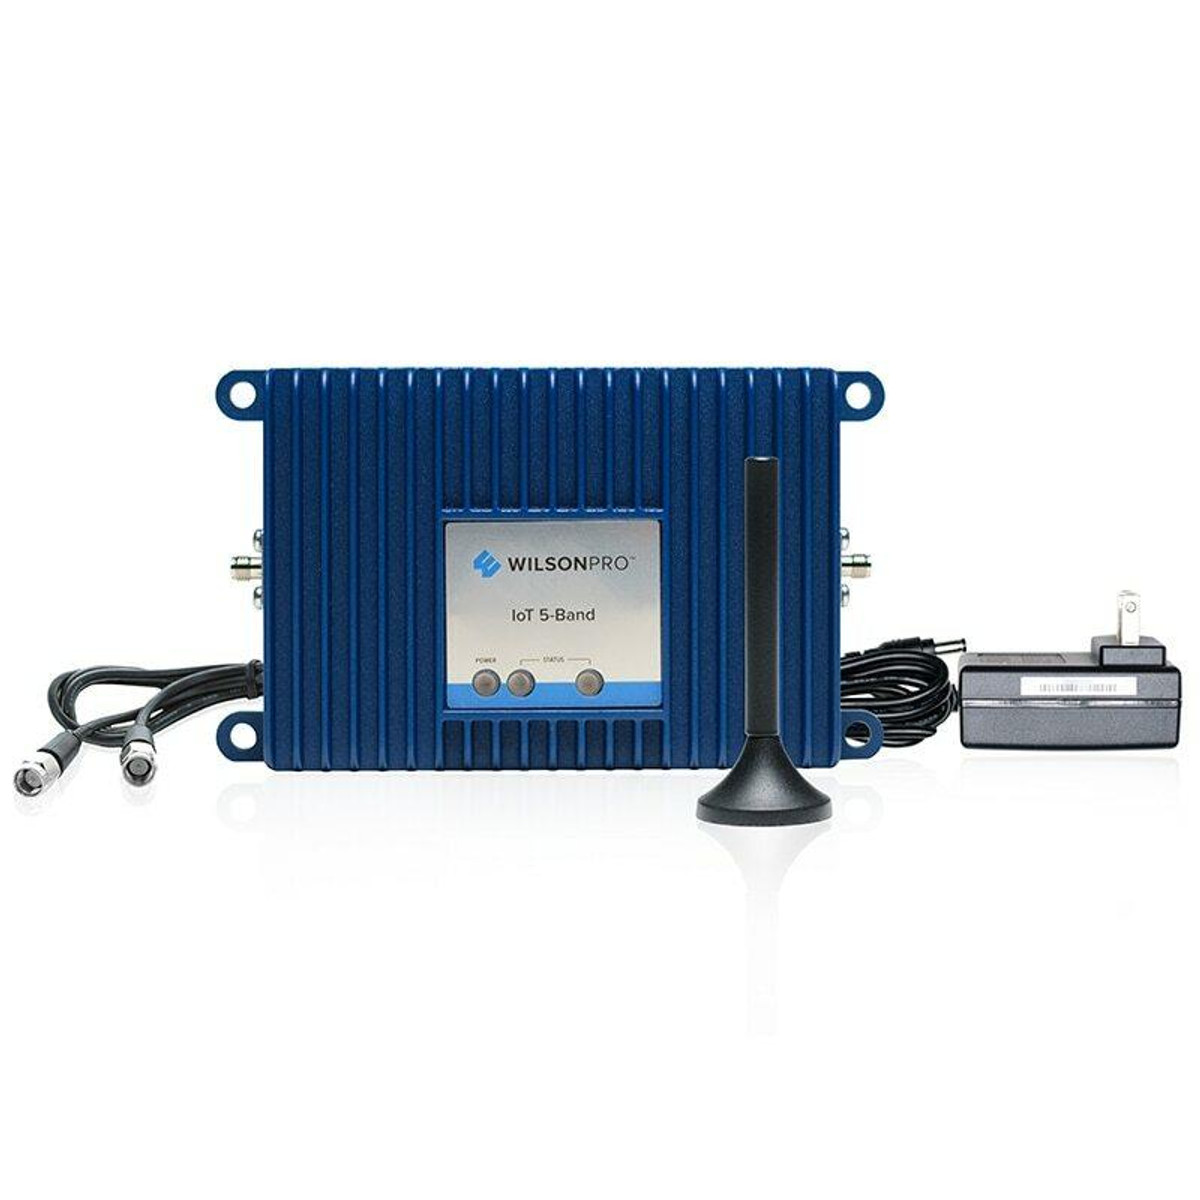 Wilson Electronics Wilson weBoost Signal 4G M2M Signal Booster, Refurbished or 460119R